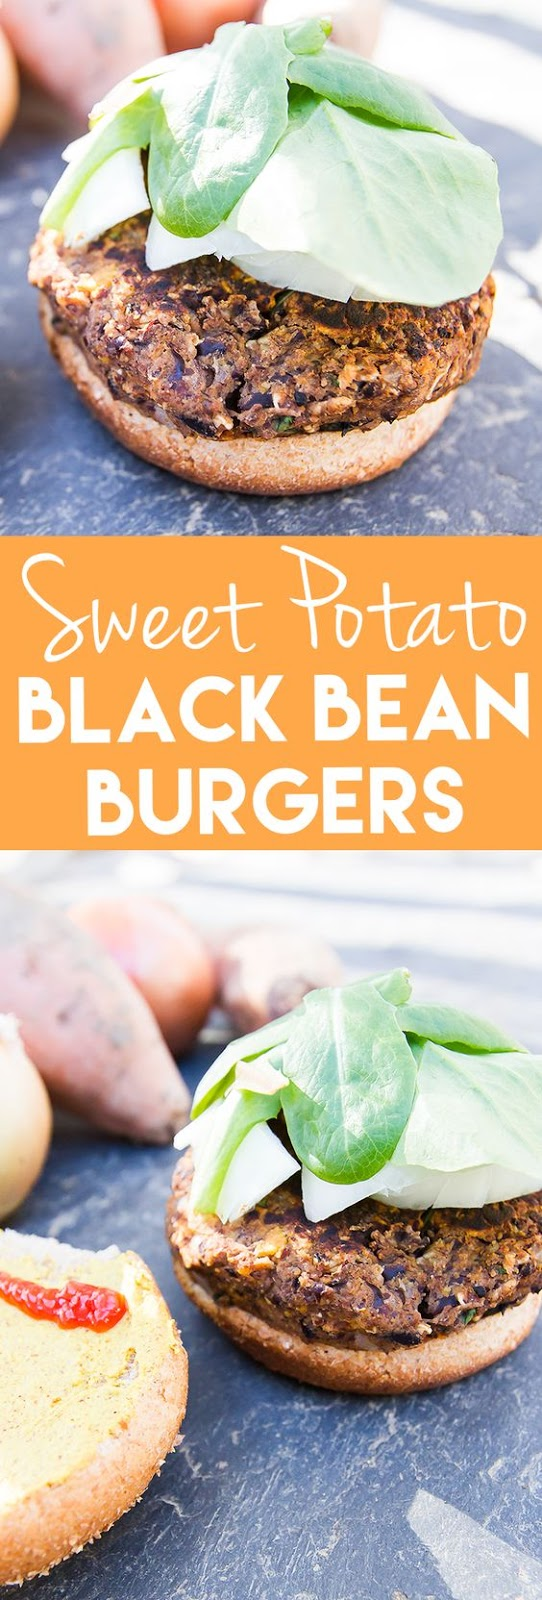 BLACK BEAN AND SWEET POTATO BURGER